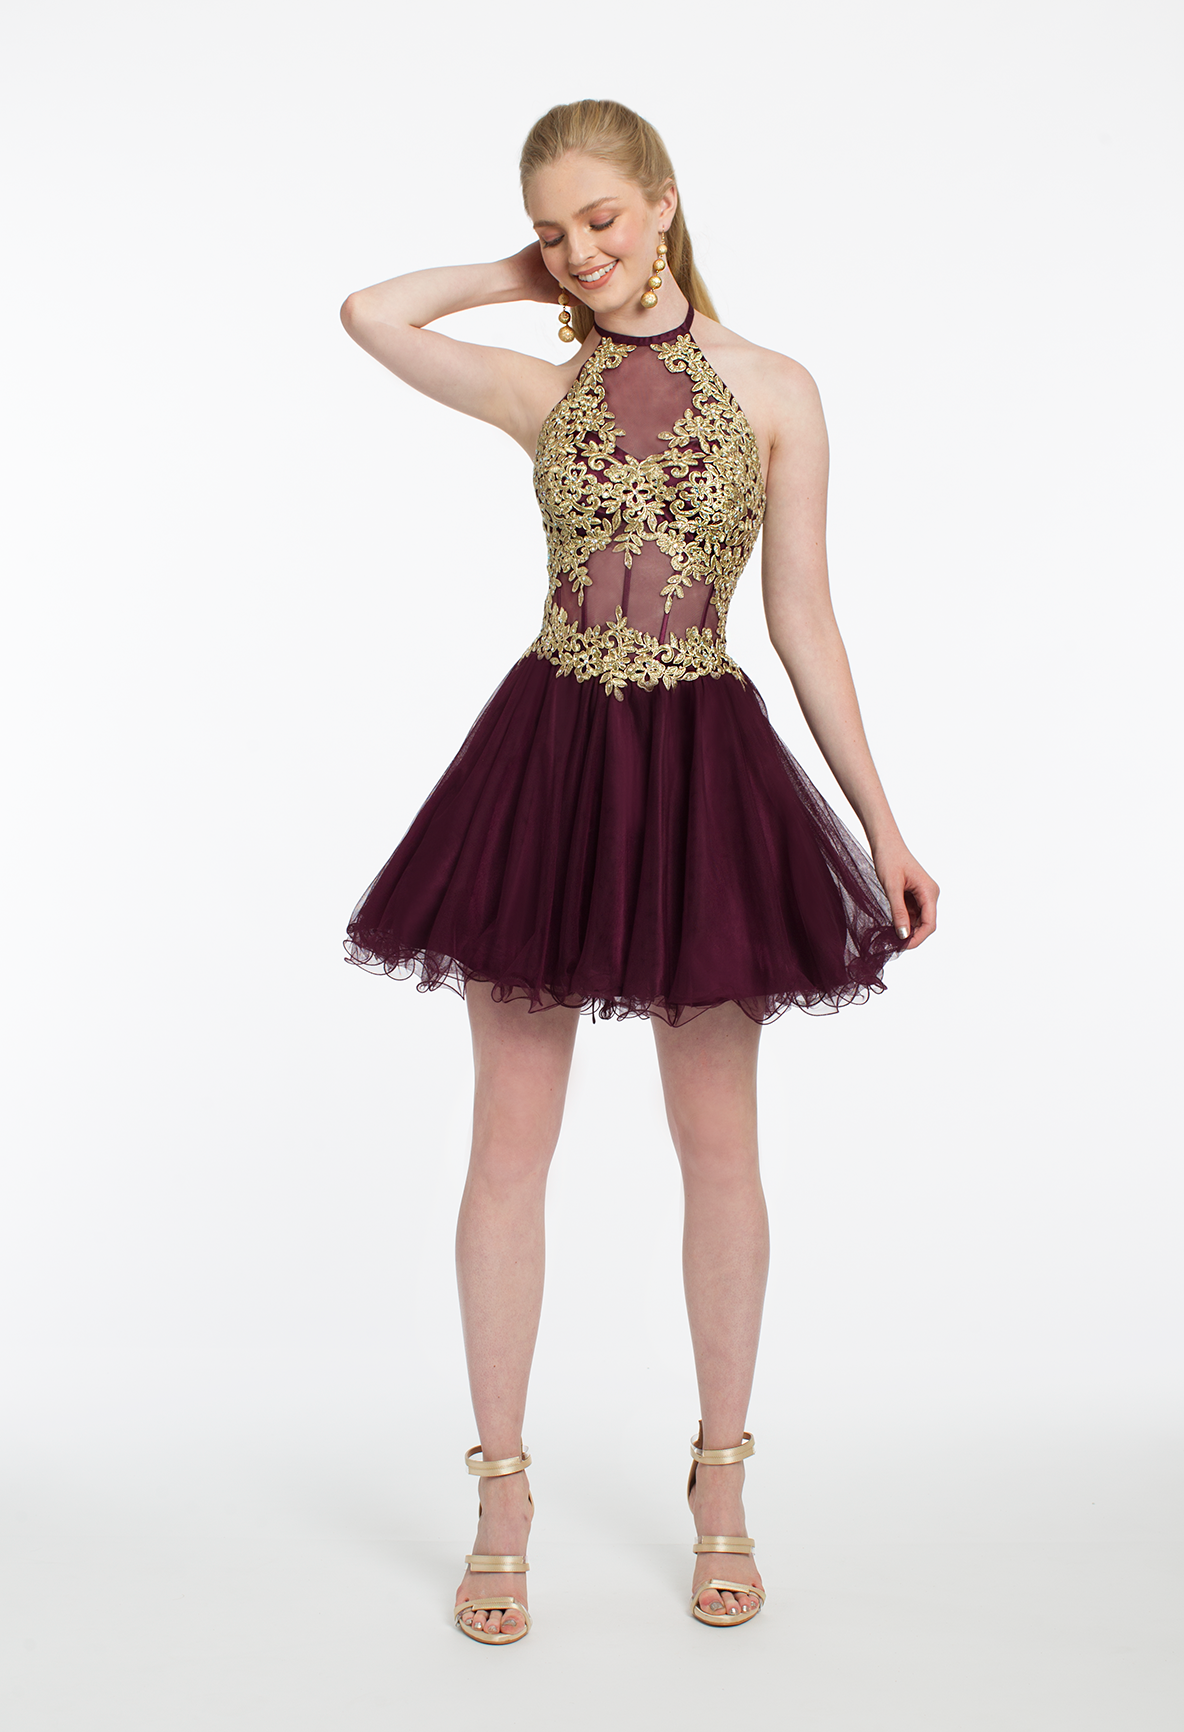 9a0f00af53 A halter neckline and hints of gold for  HOCO  Say no more! This